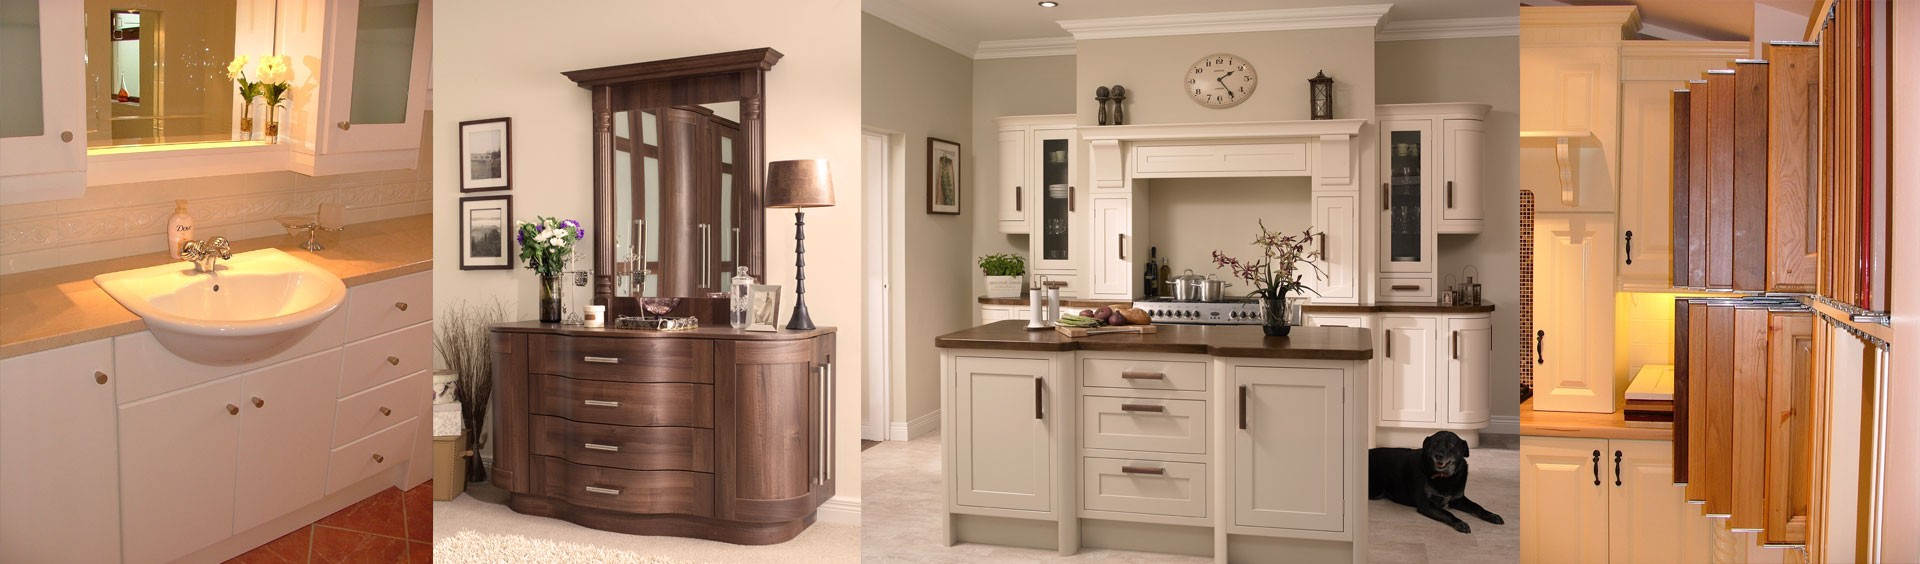 Examples of our work solid wood, kitchen vanity unit bathroom, bedroom dressing table